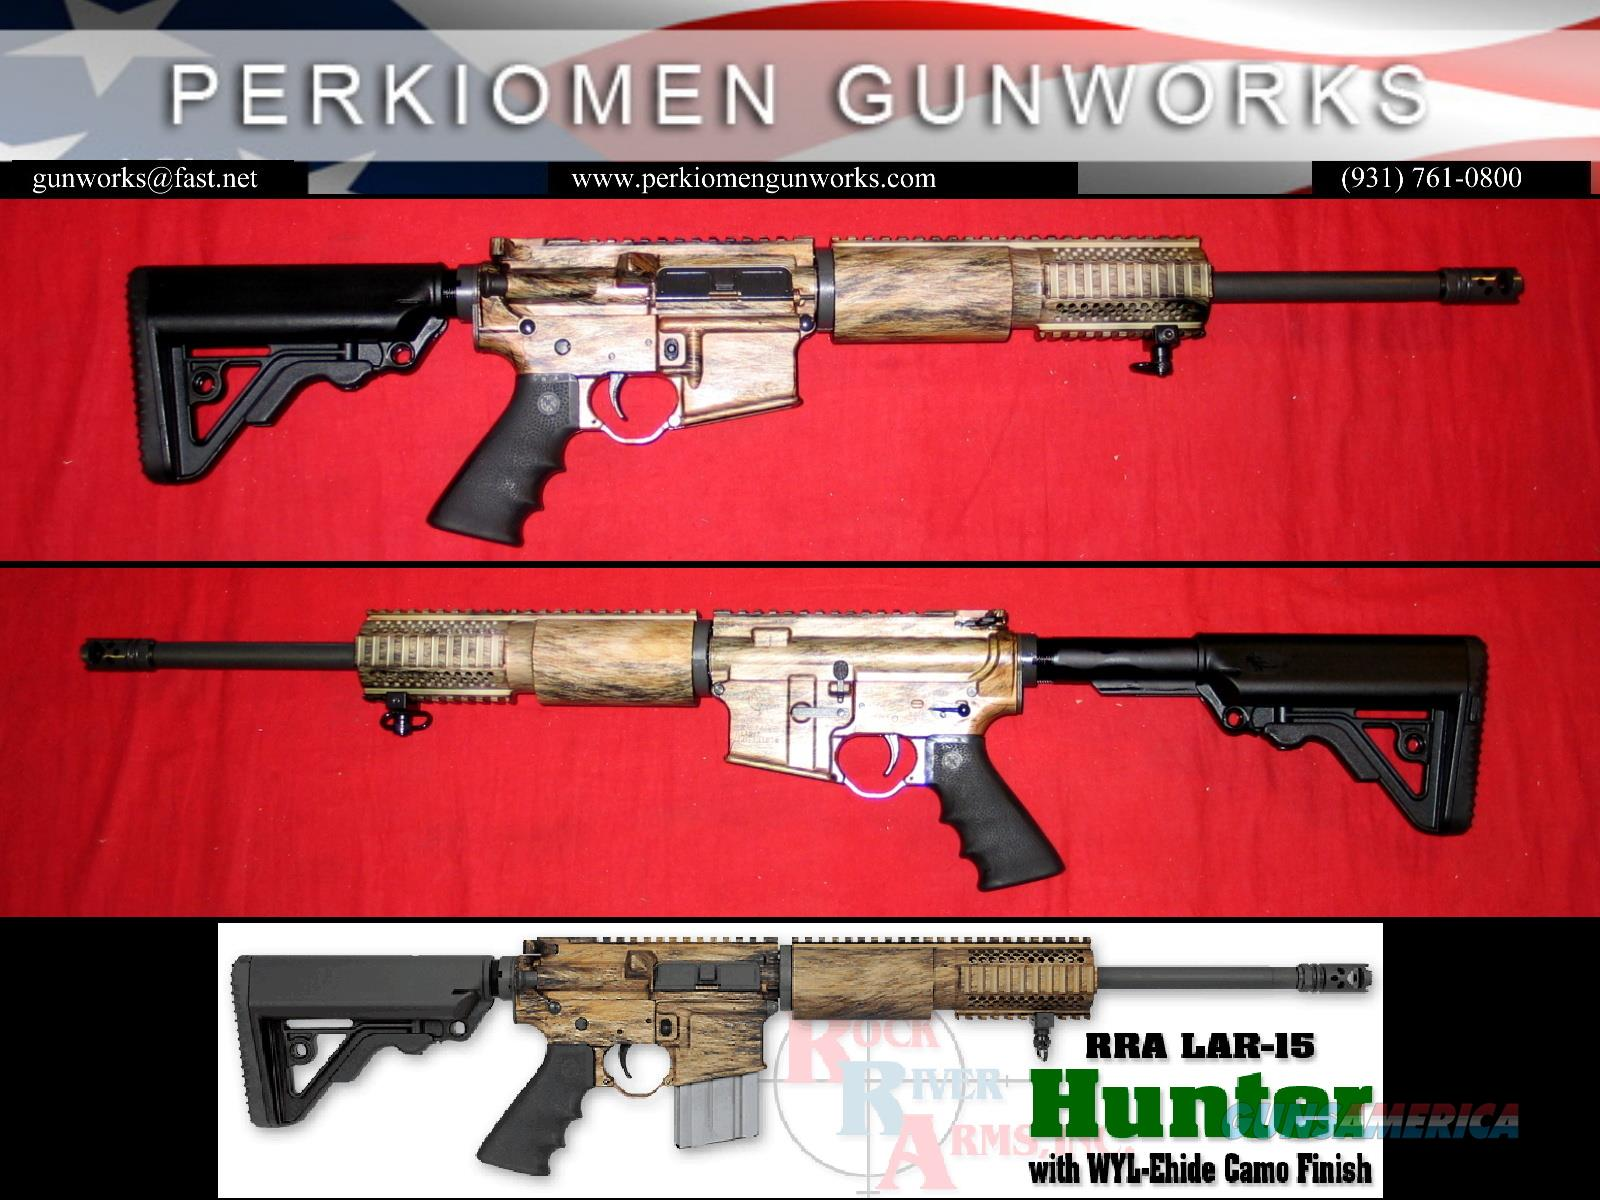 WYL-Ehide LAR-15 Hunter w/Coyote Camo Finish, # WH1000 - New in Hard case  Guns > Rifles > Rock River Arms Rifles